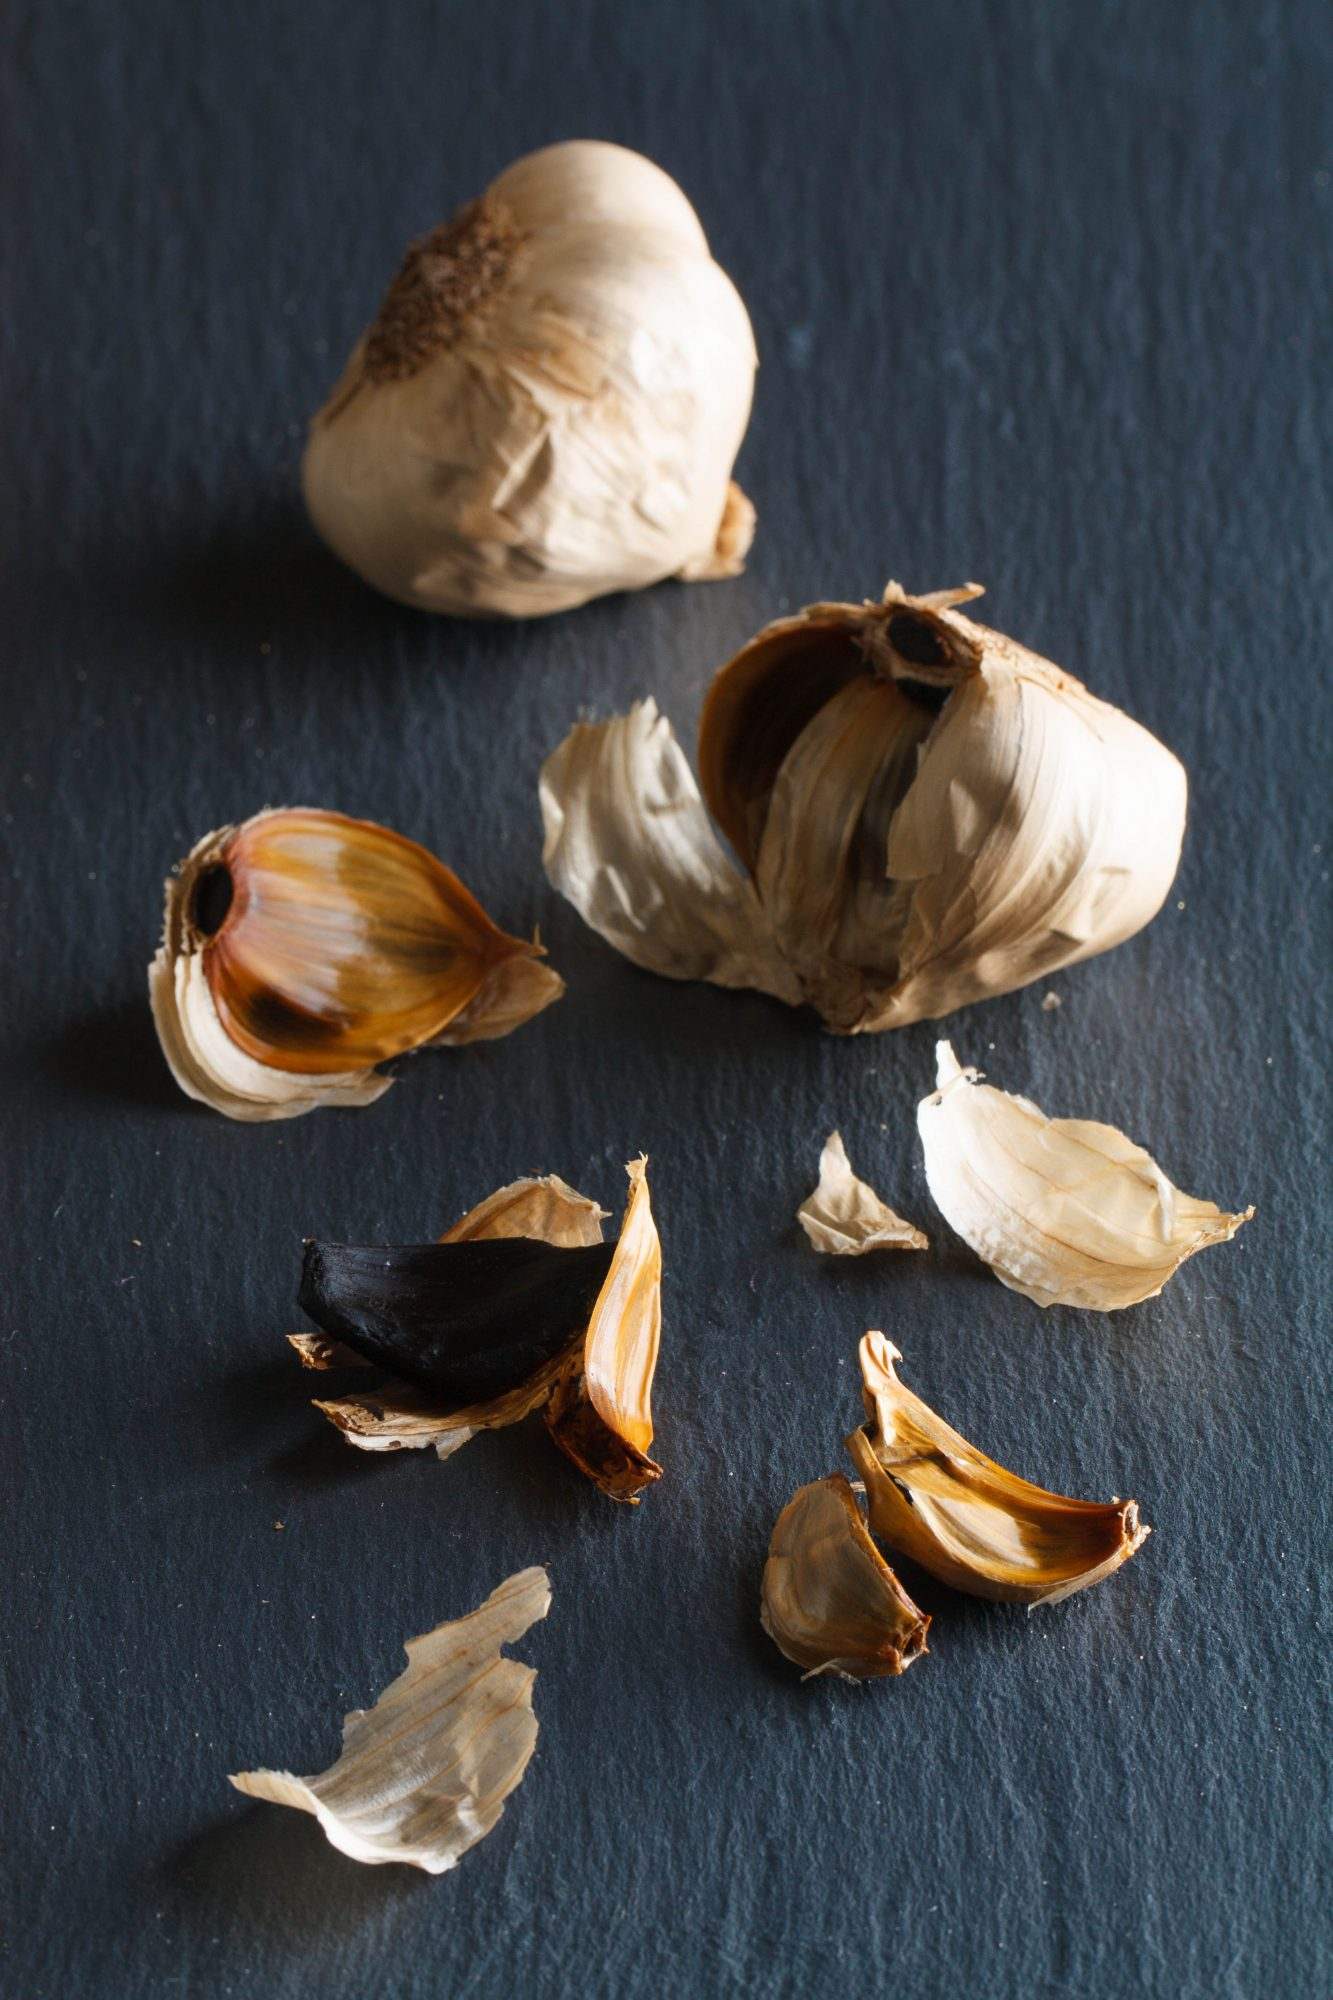 cloves and heads of black garlic